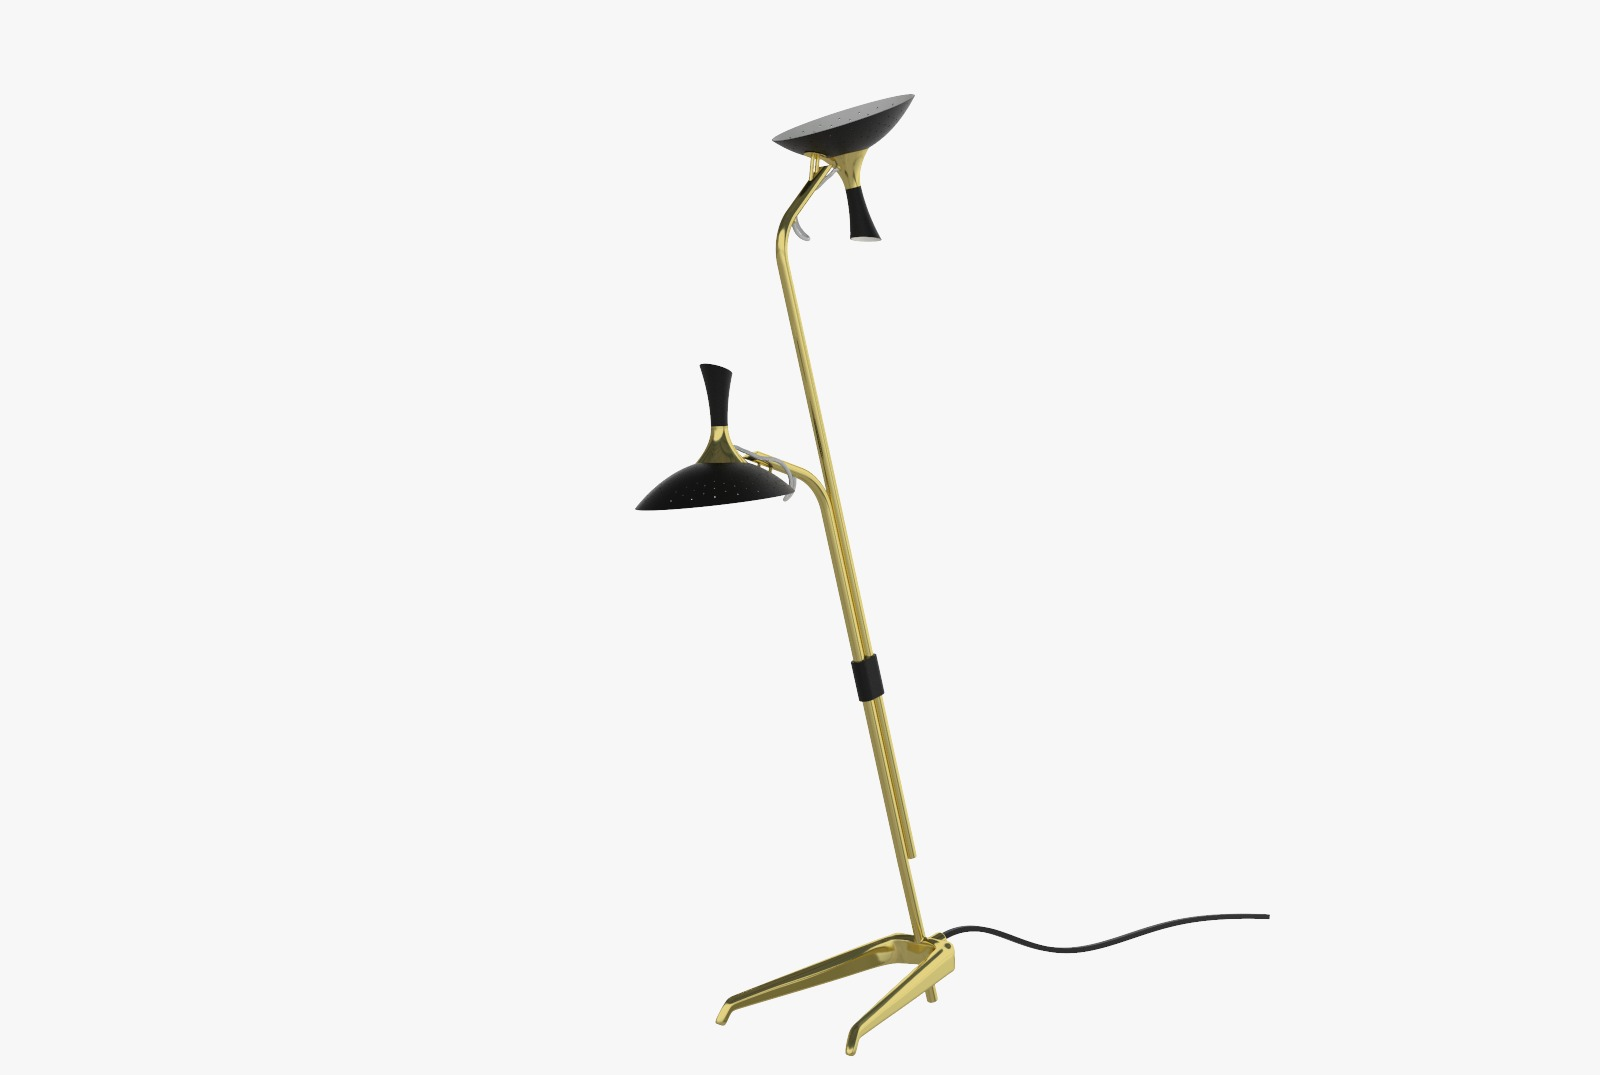 How To Bring This Floor Lamp To Your Valentine's Day Decor 4 Valentine's Day How To Bring This Floor Lamp To Your Valentine's Day Decor How To Bring This Floor Lamp To Your Valentines Day Decor 4